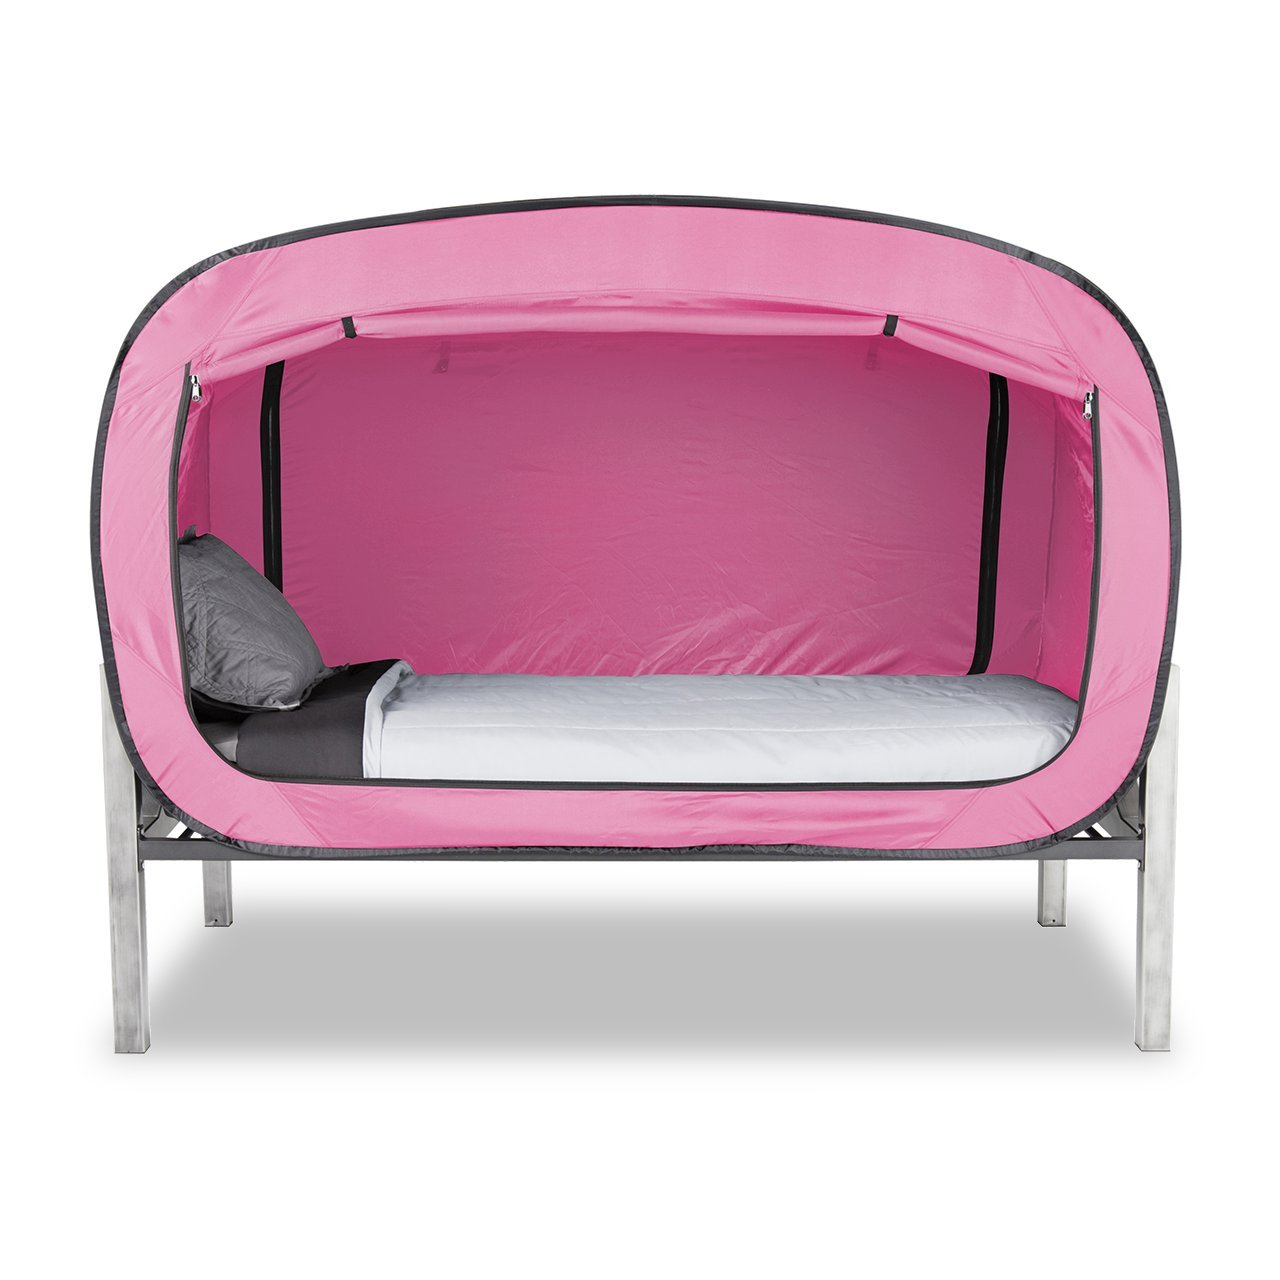 sc 1 st  Amazon.com & Amazon.com: Privacy Pop Bed Tent (Twin XL) - PINK: Kitchen u0026 Dining